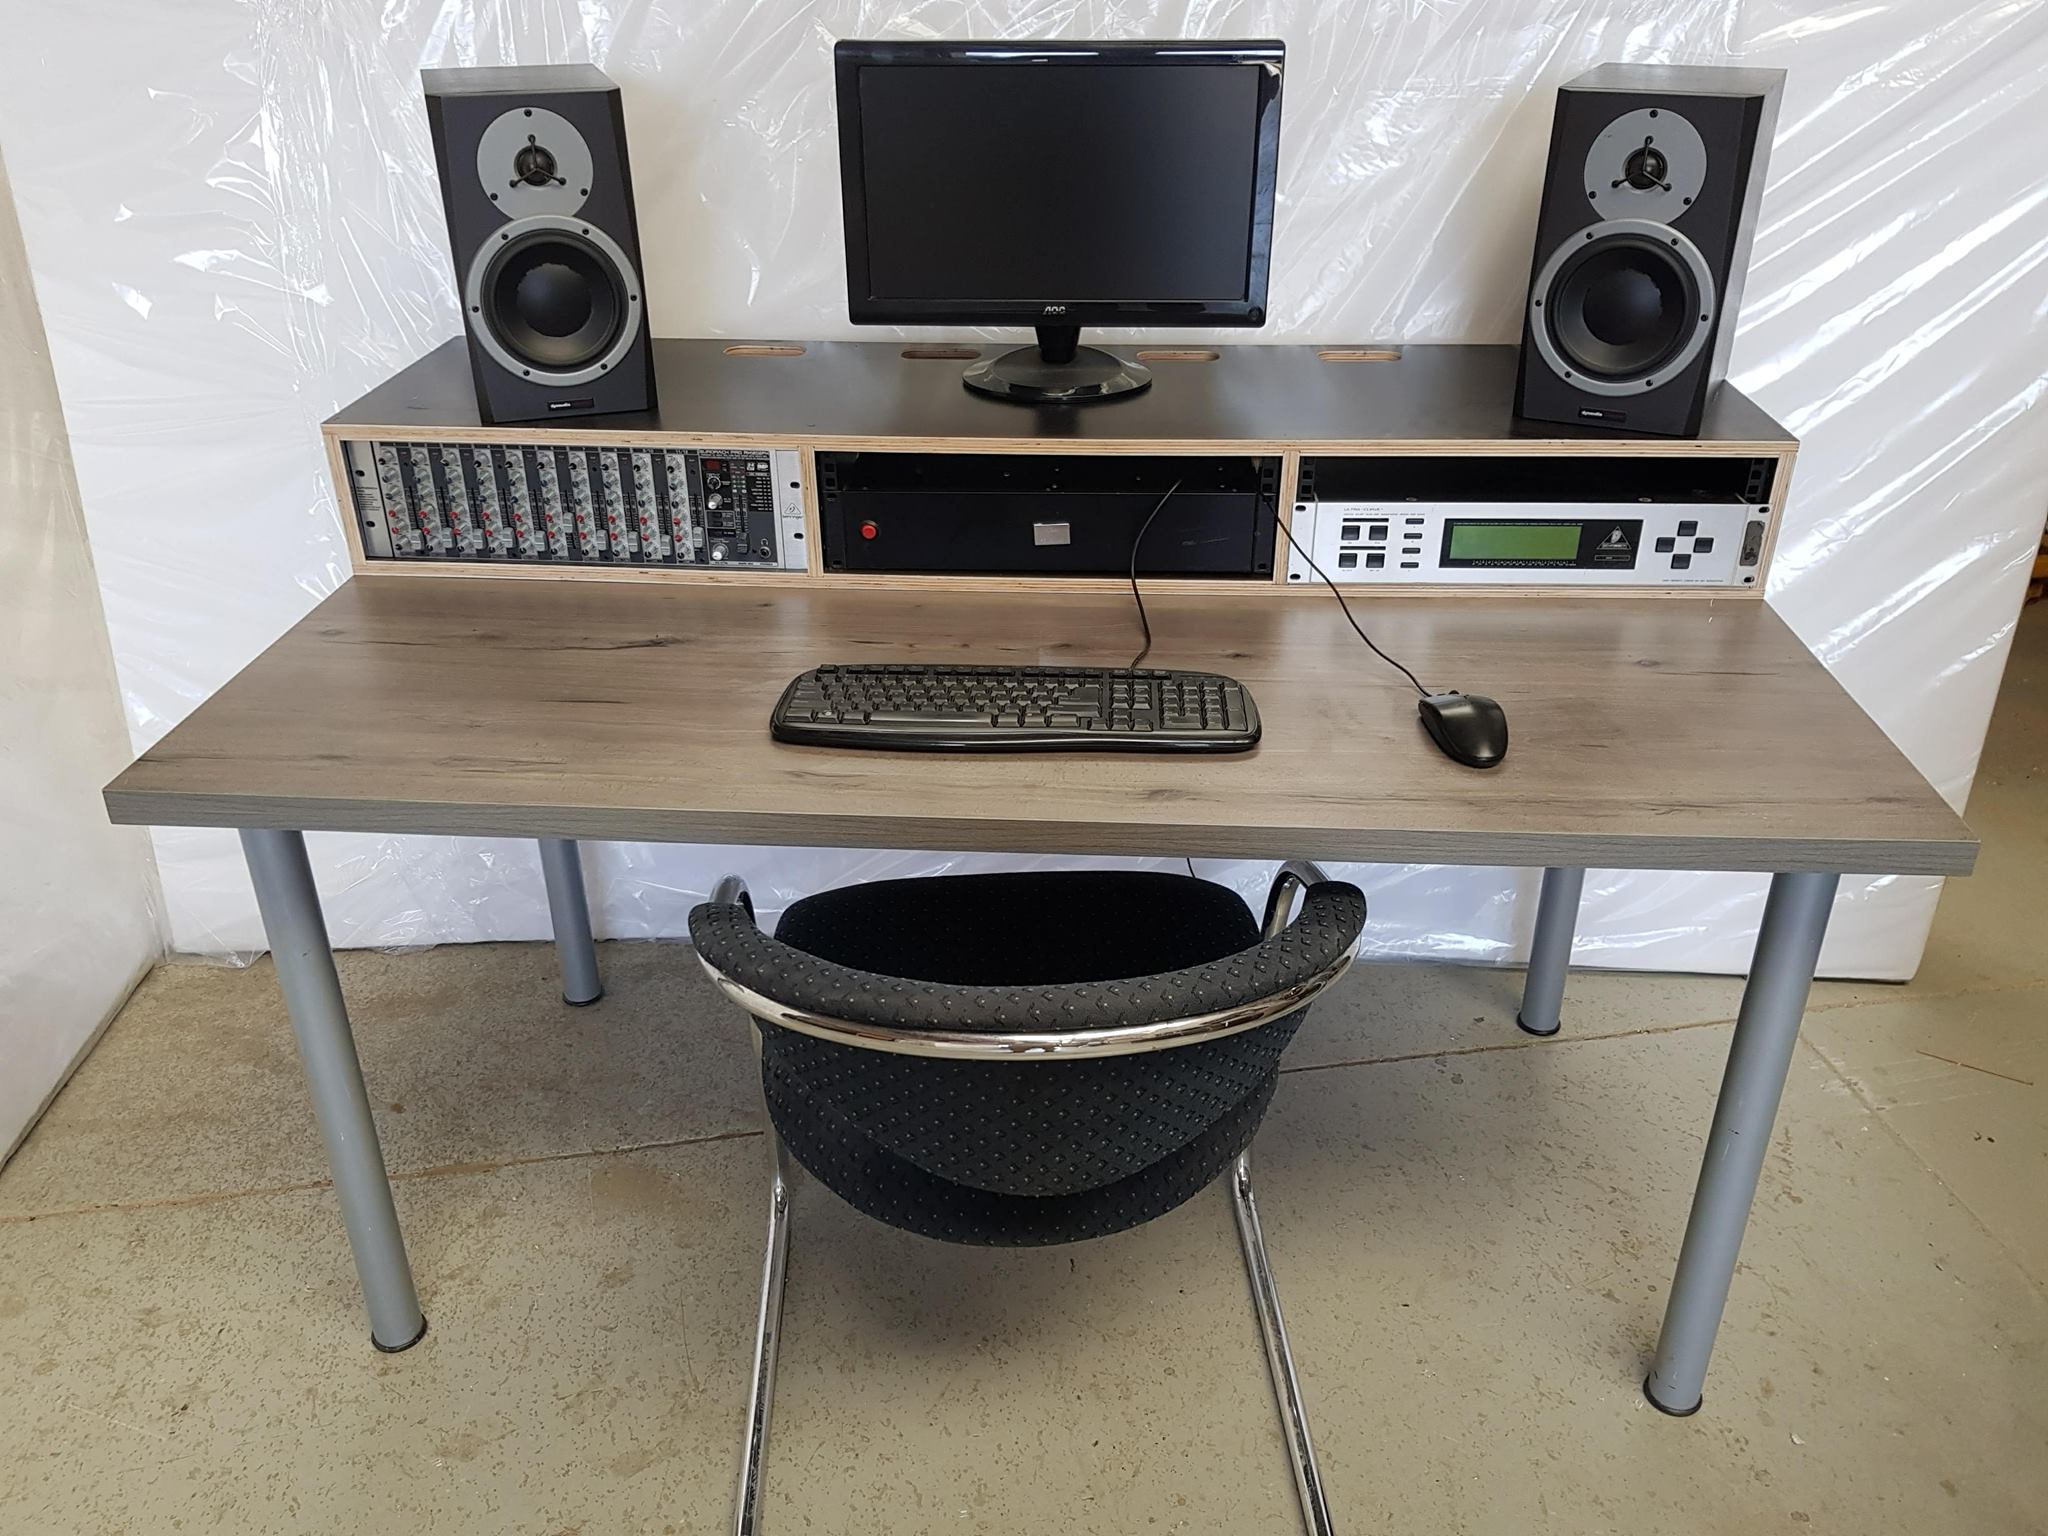 AdaptaDesk adds 9RU to a standard office desk or table.  Get the price list